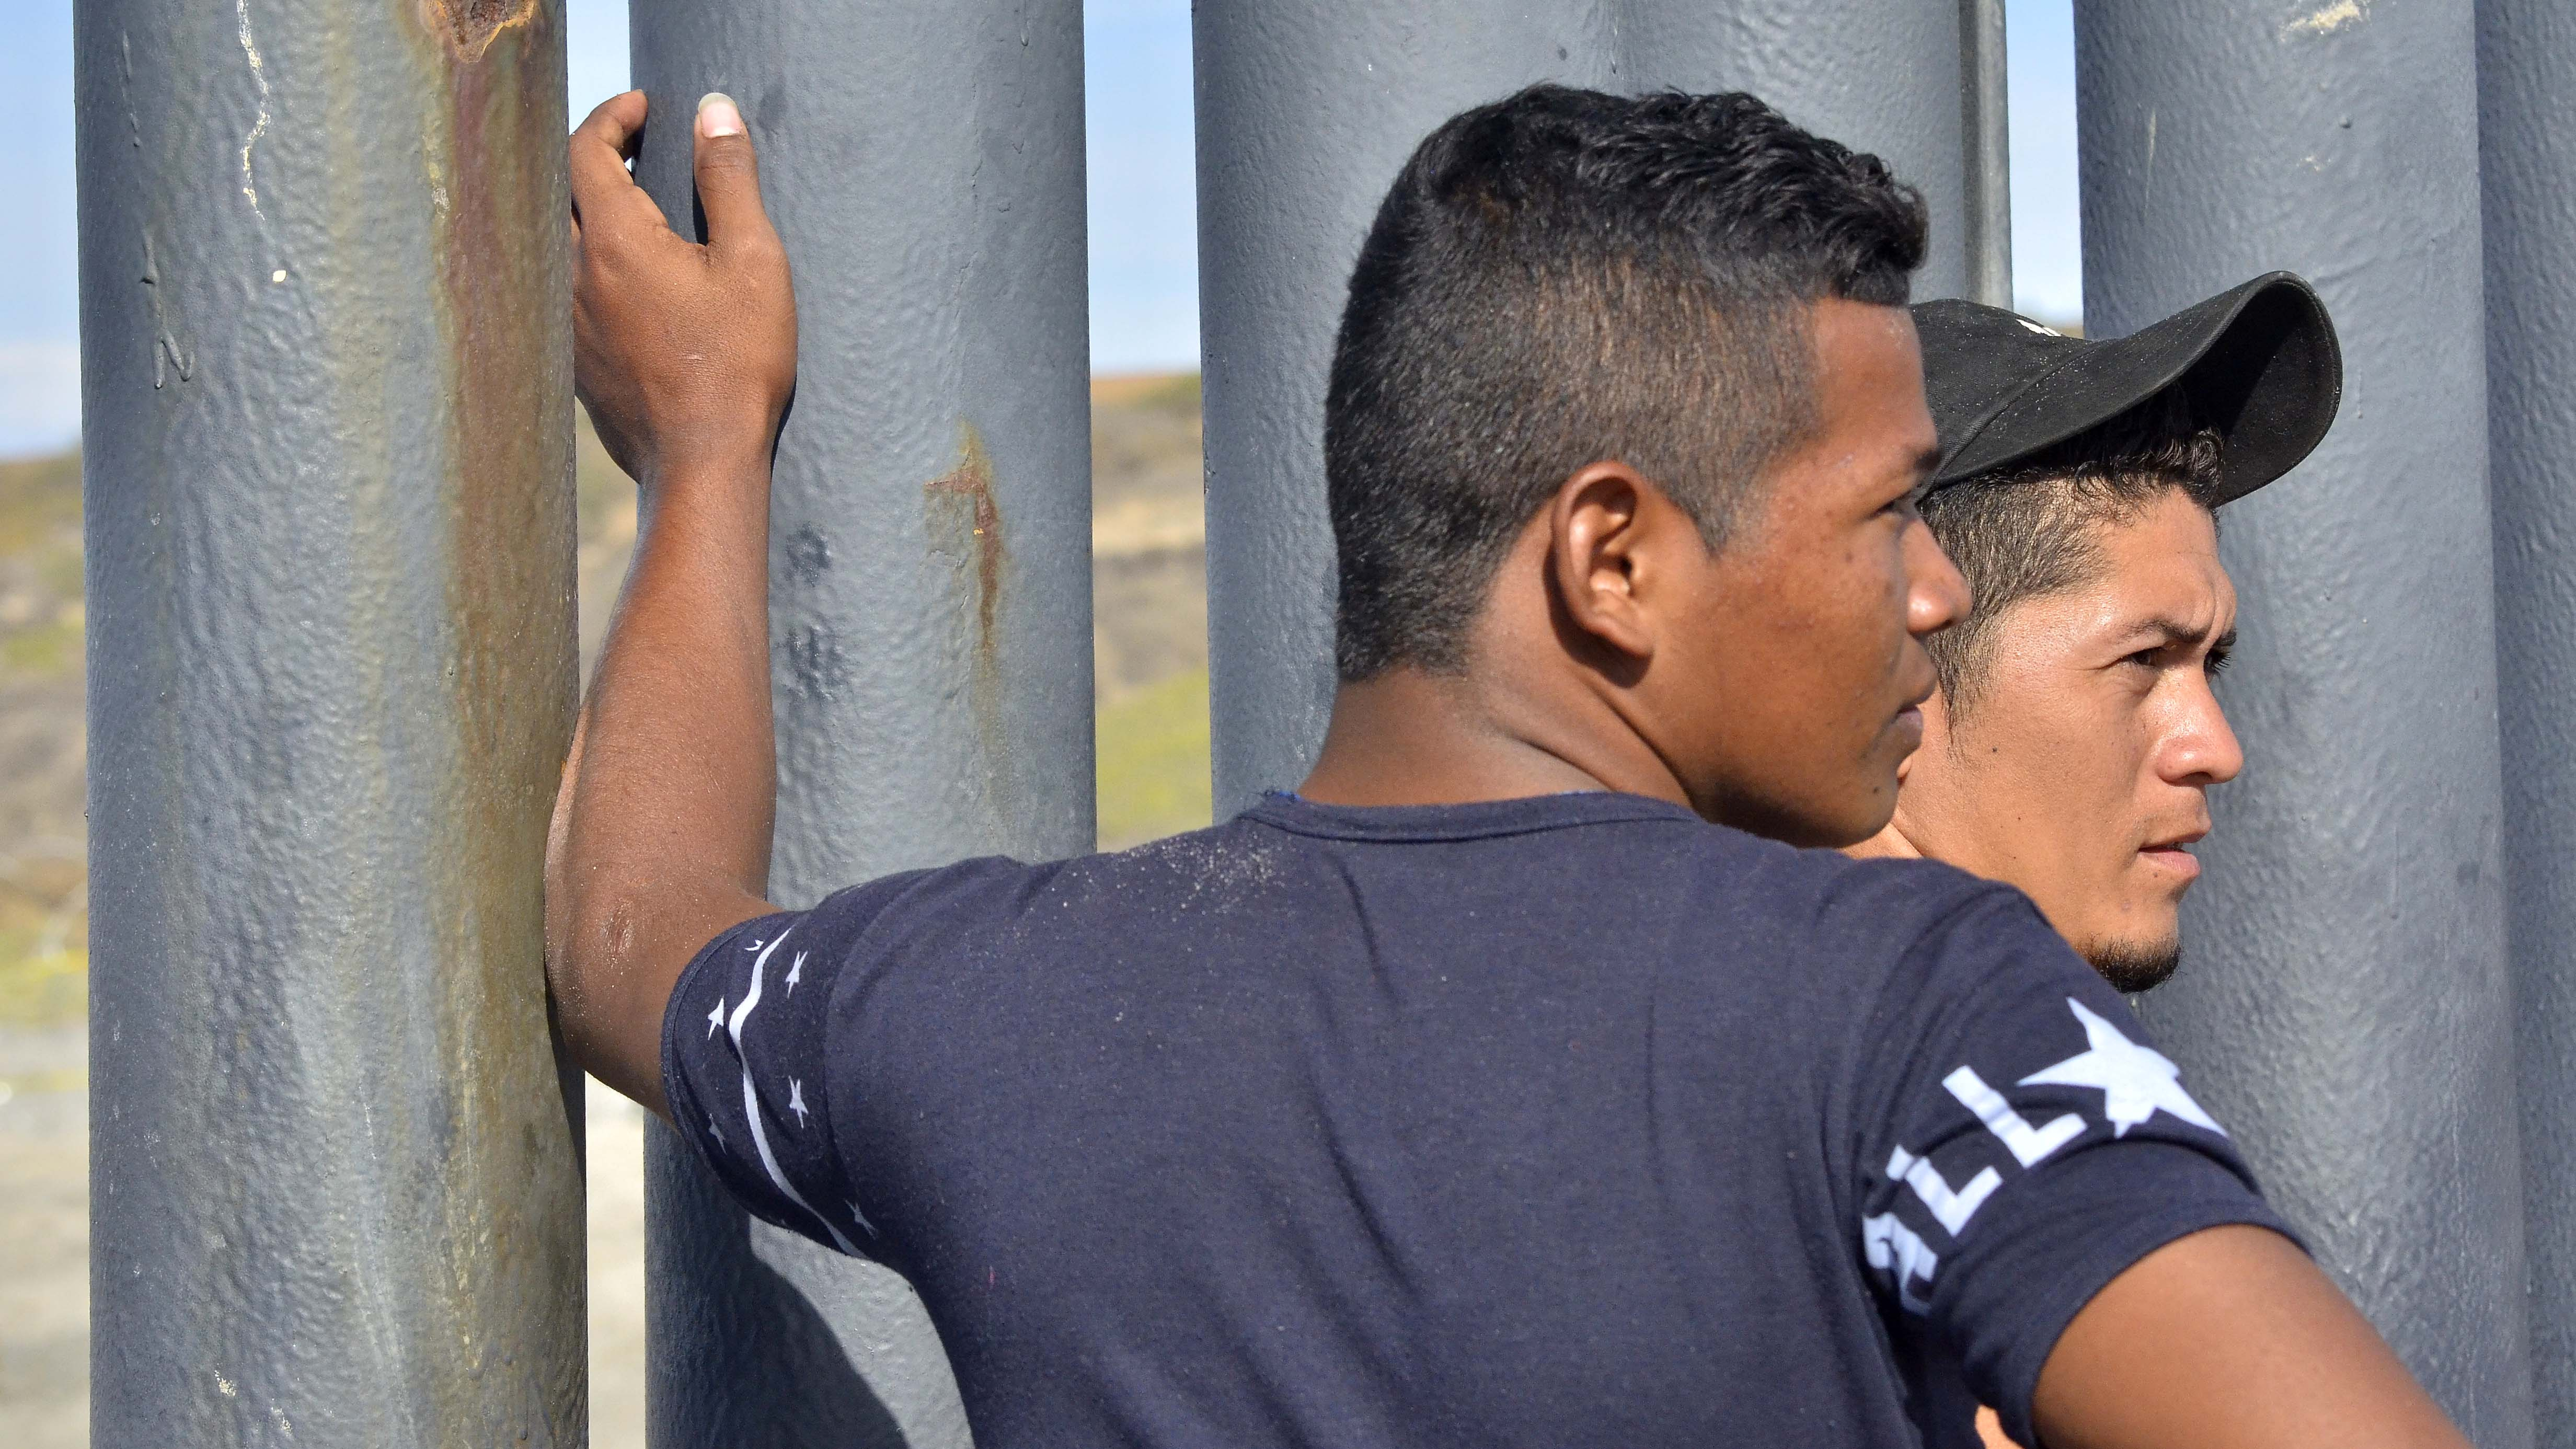 Nixon (first name), 19, and Lionel, 23, from Honduras arrived in Tijuana the day before.